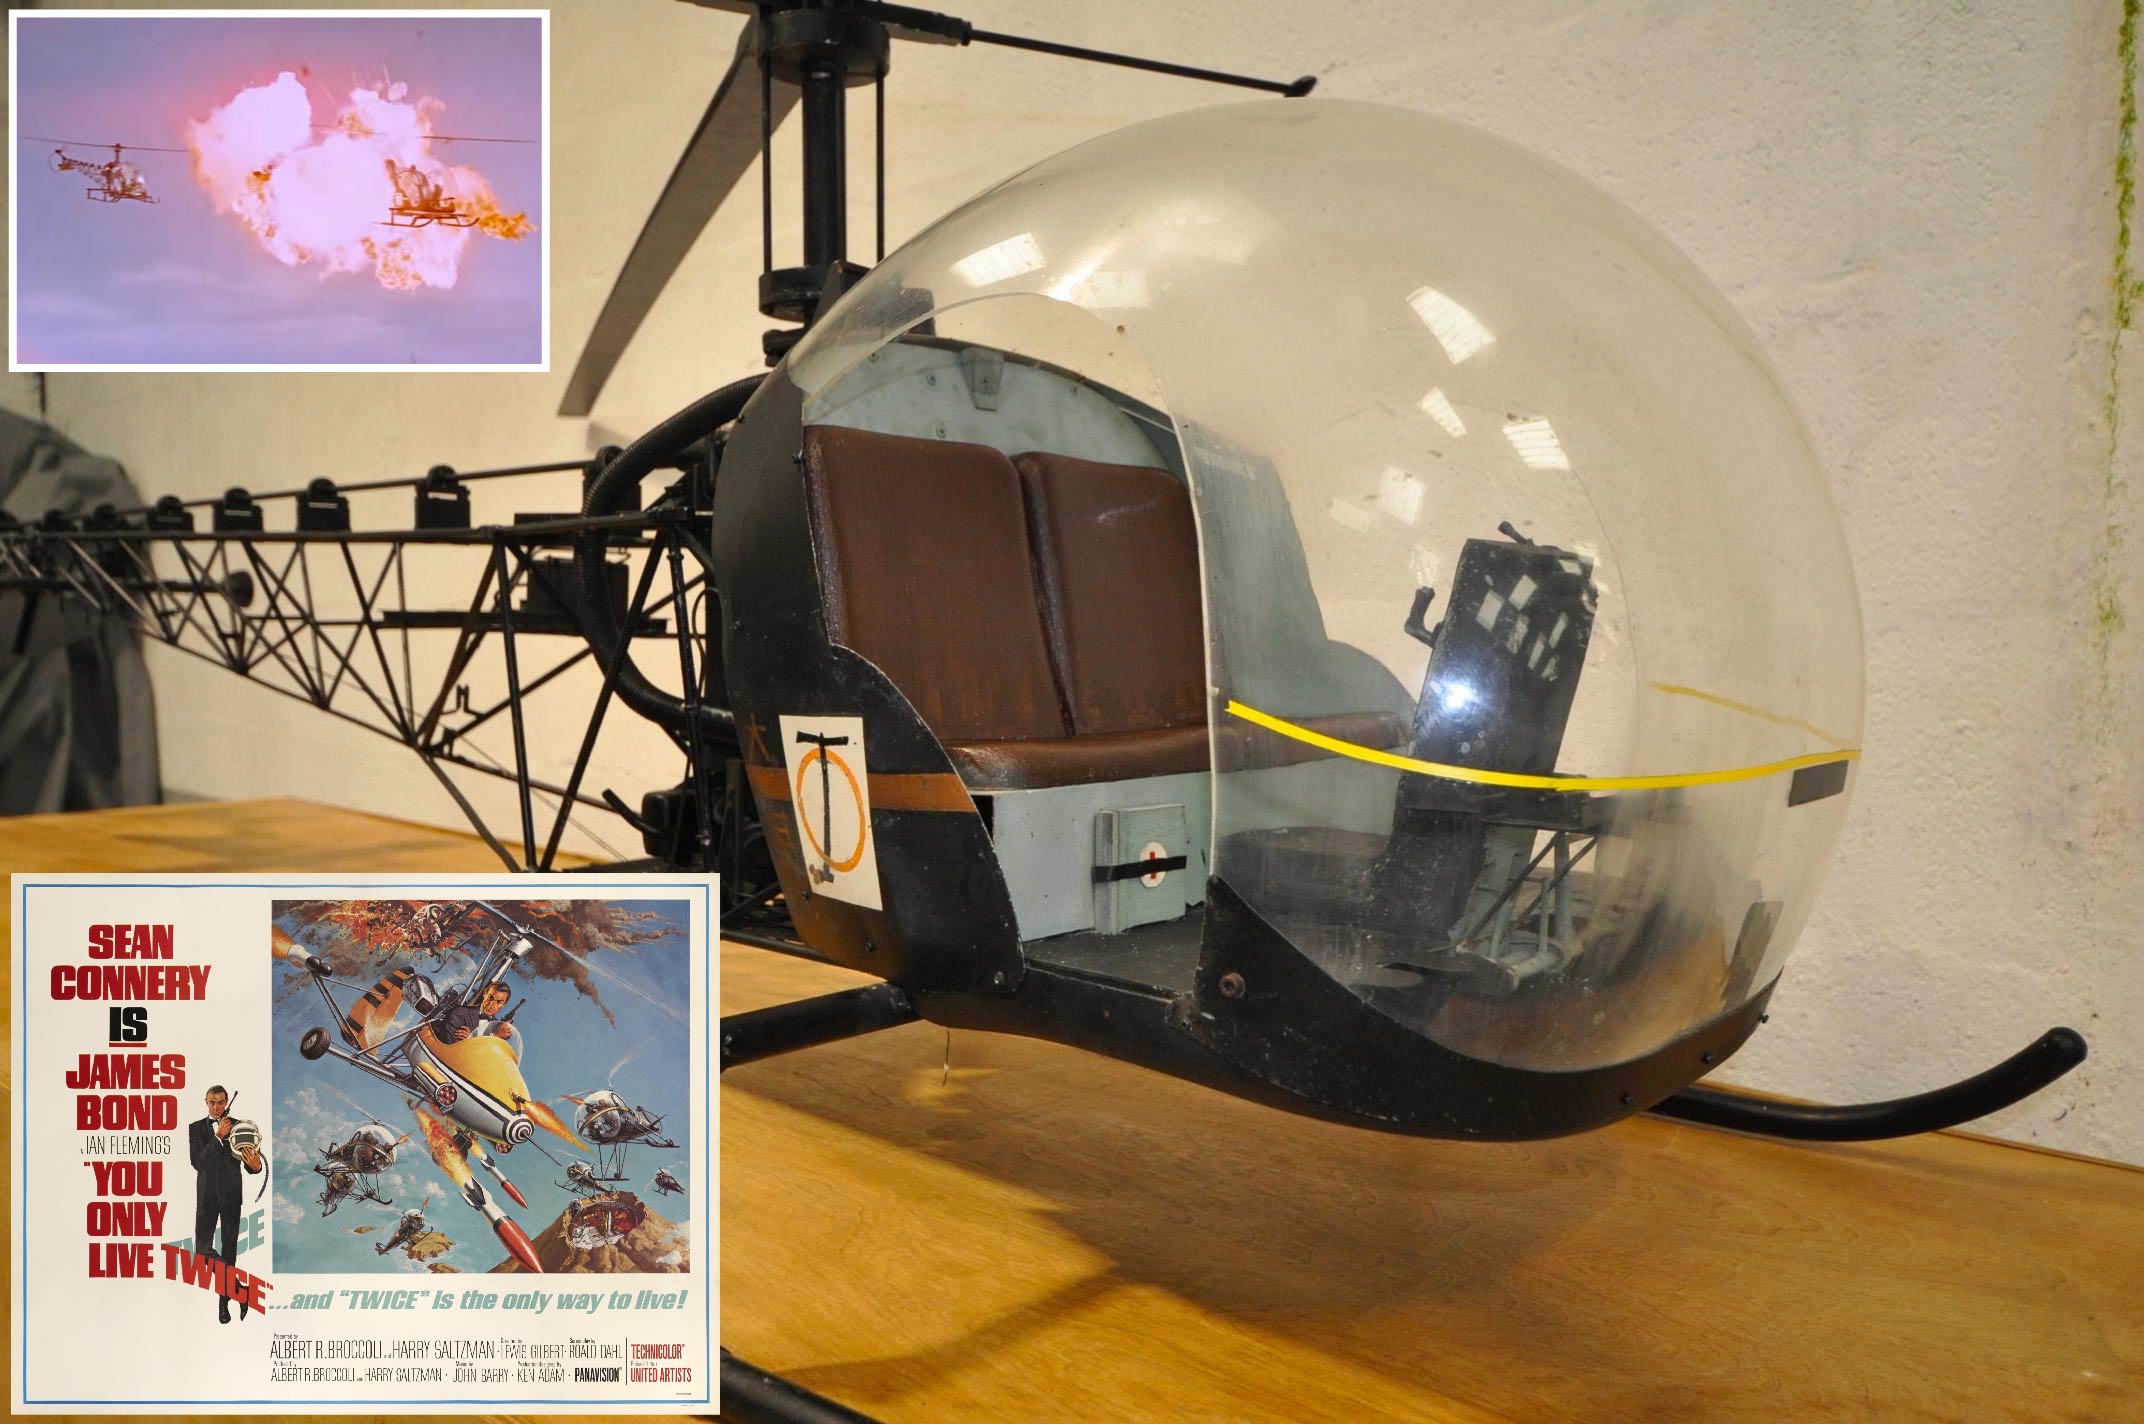 James-Bond-Bell-47G-Model-Helicopter-You-Only-Live-Twice Movie